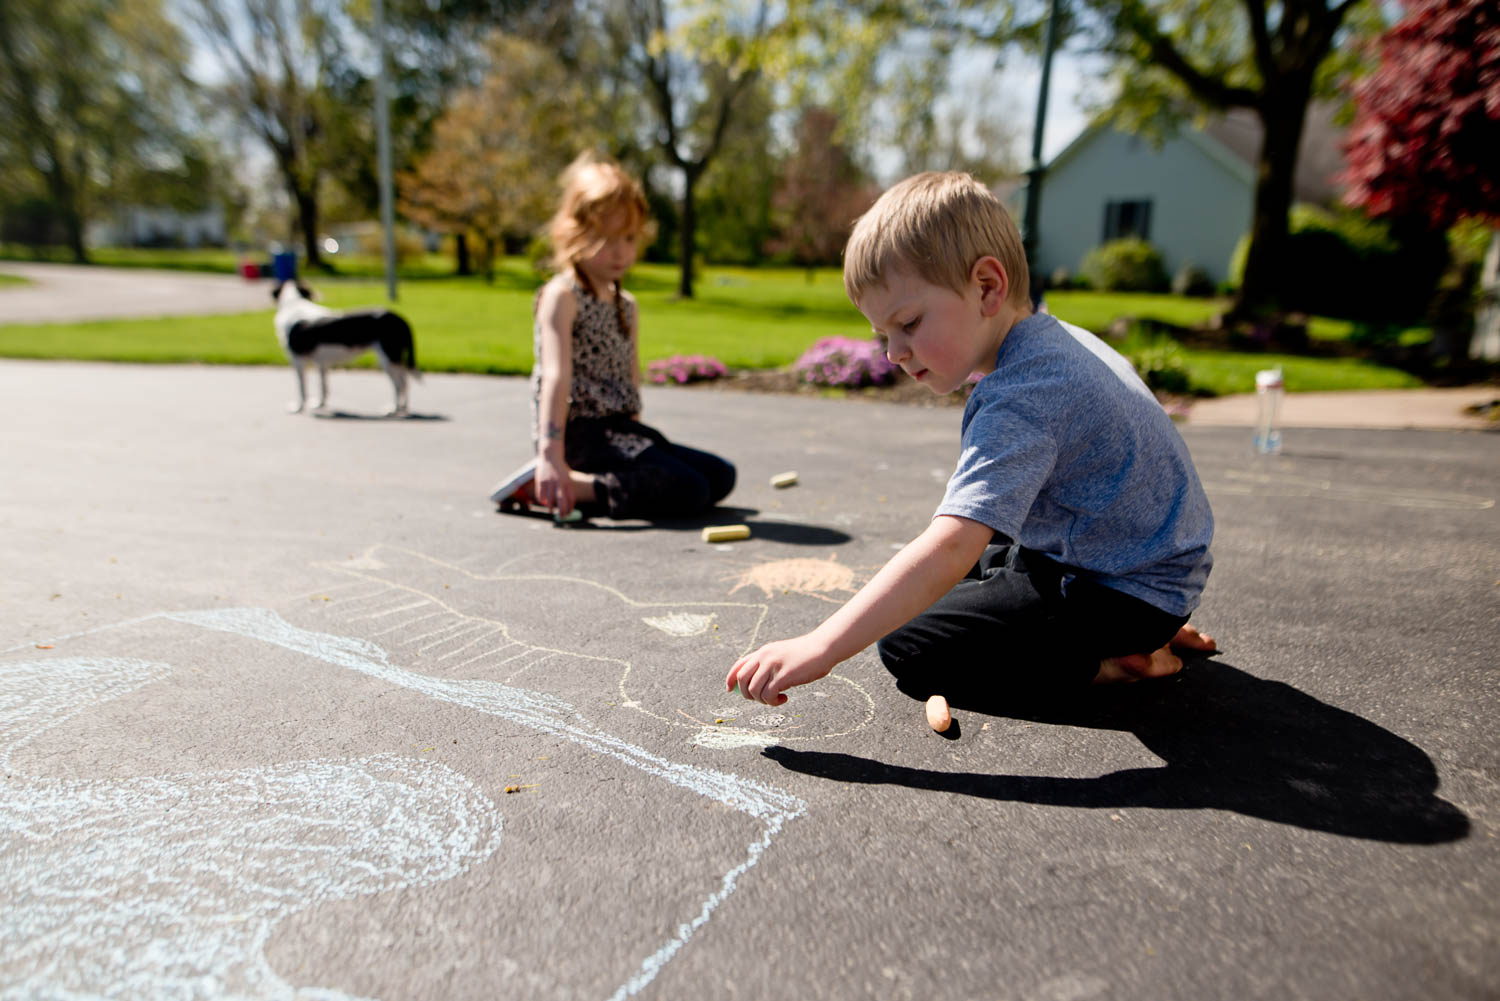 Outdoor fun! Shadow tracing art activity for kids